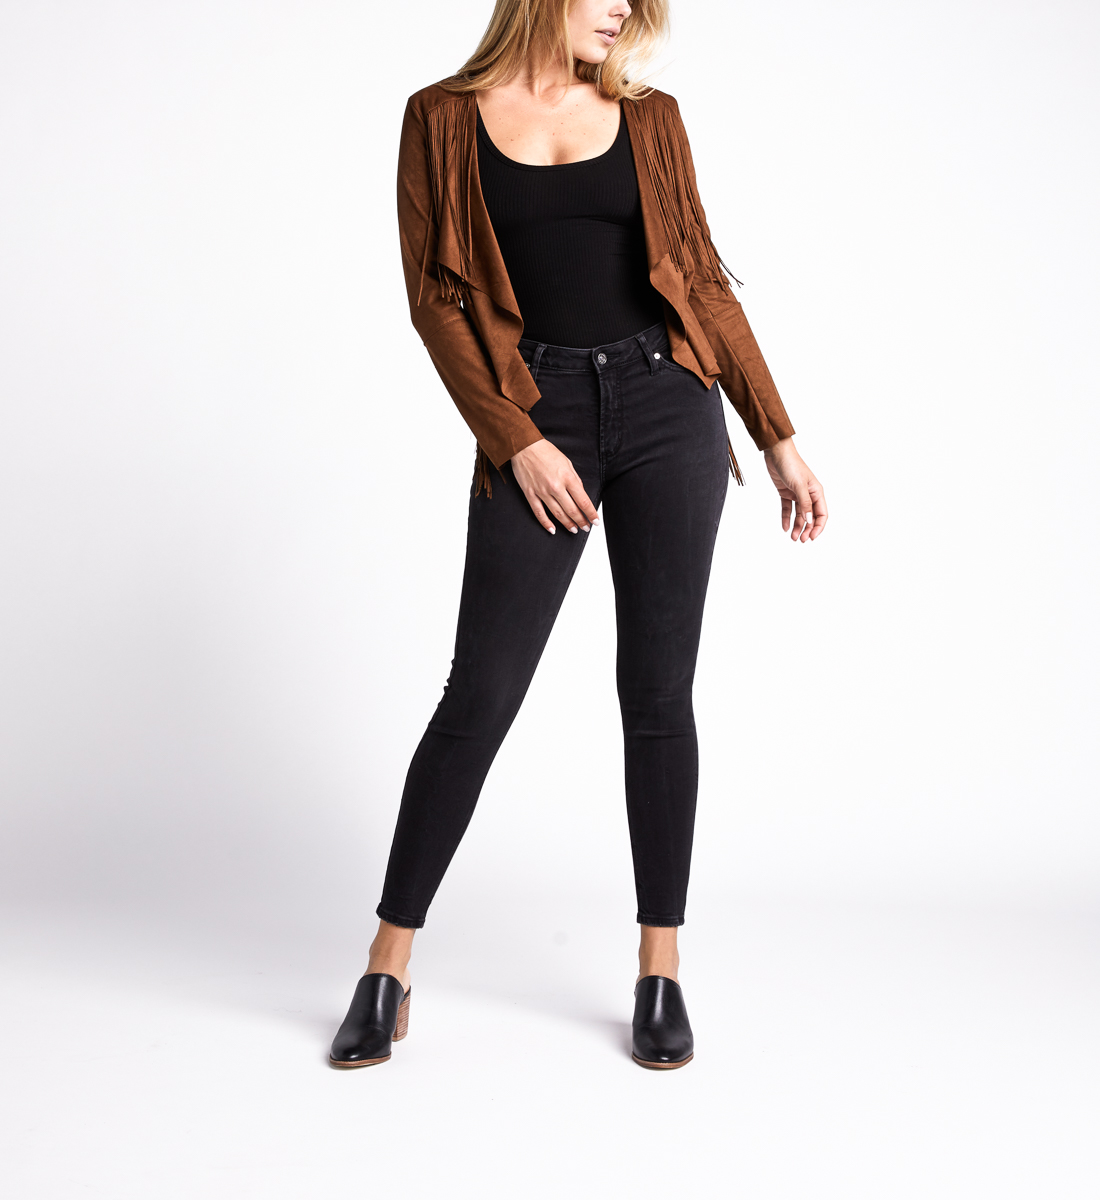 Most Wanted Mid Rise Skinny Leg Jeans,Black Front